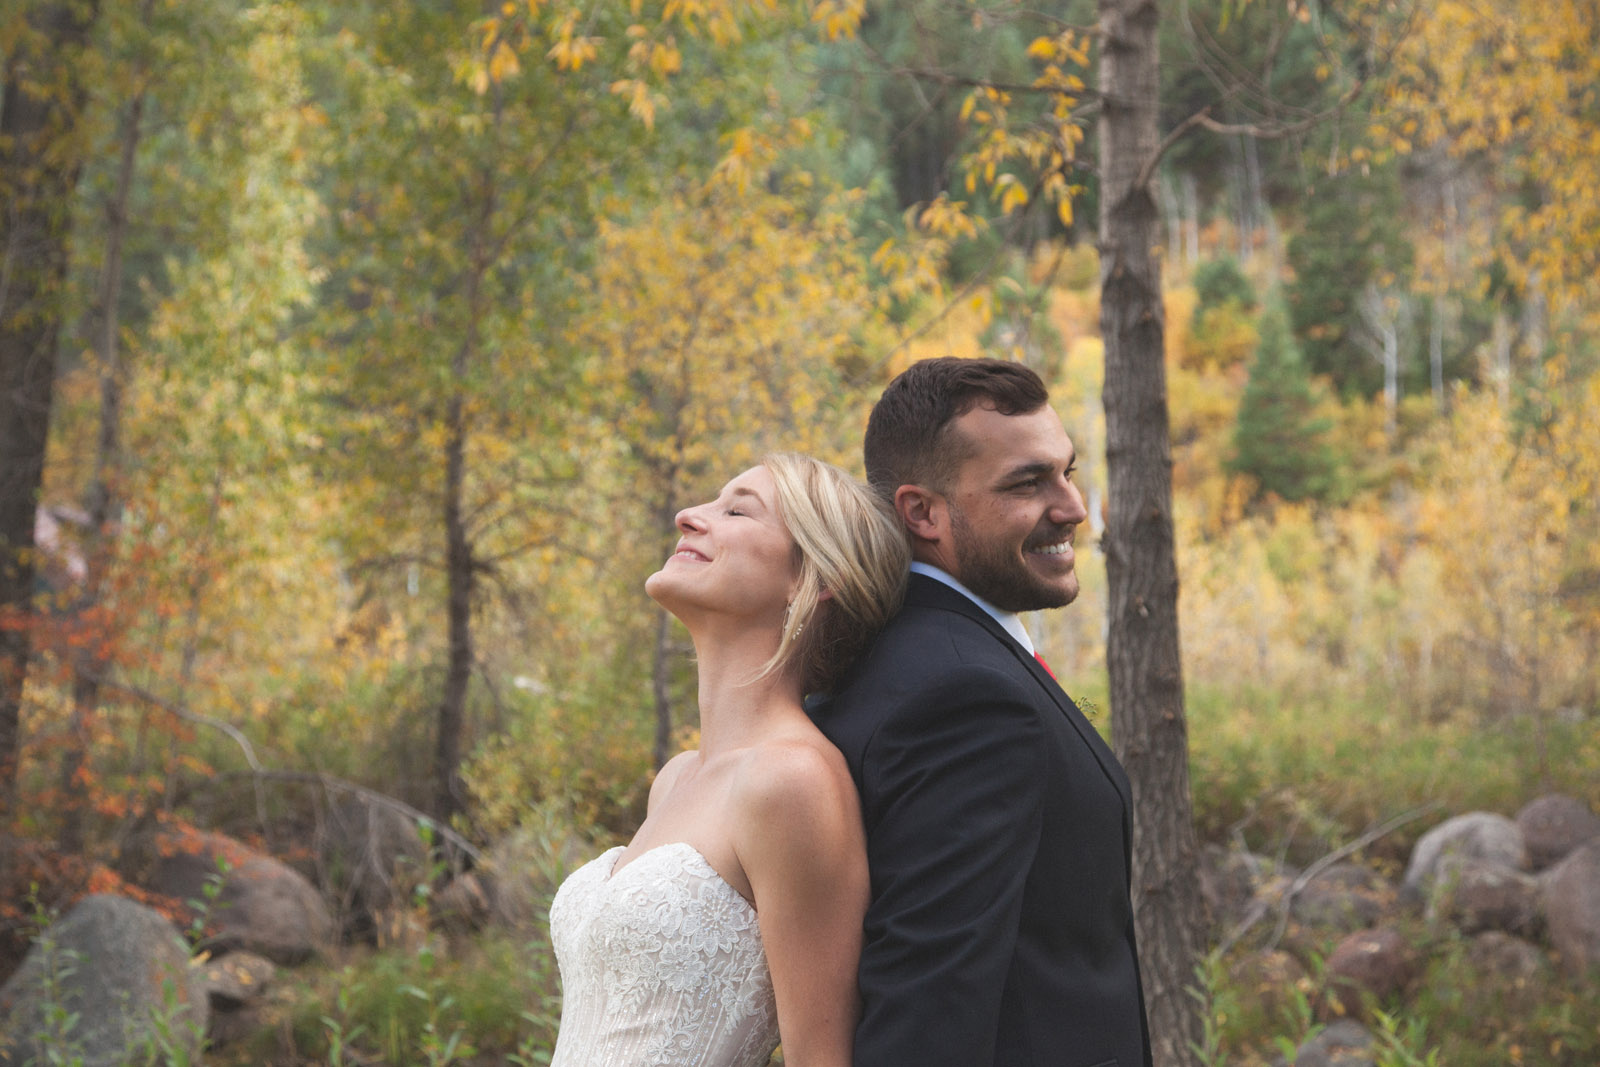 130-beautiful-bride-and-groom-photojournalist-portraits-at-elopement-wedding-in-durango-colorado-forest